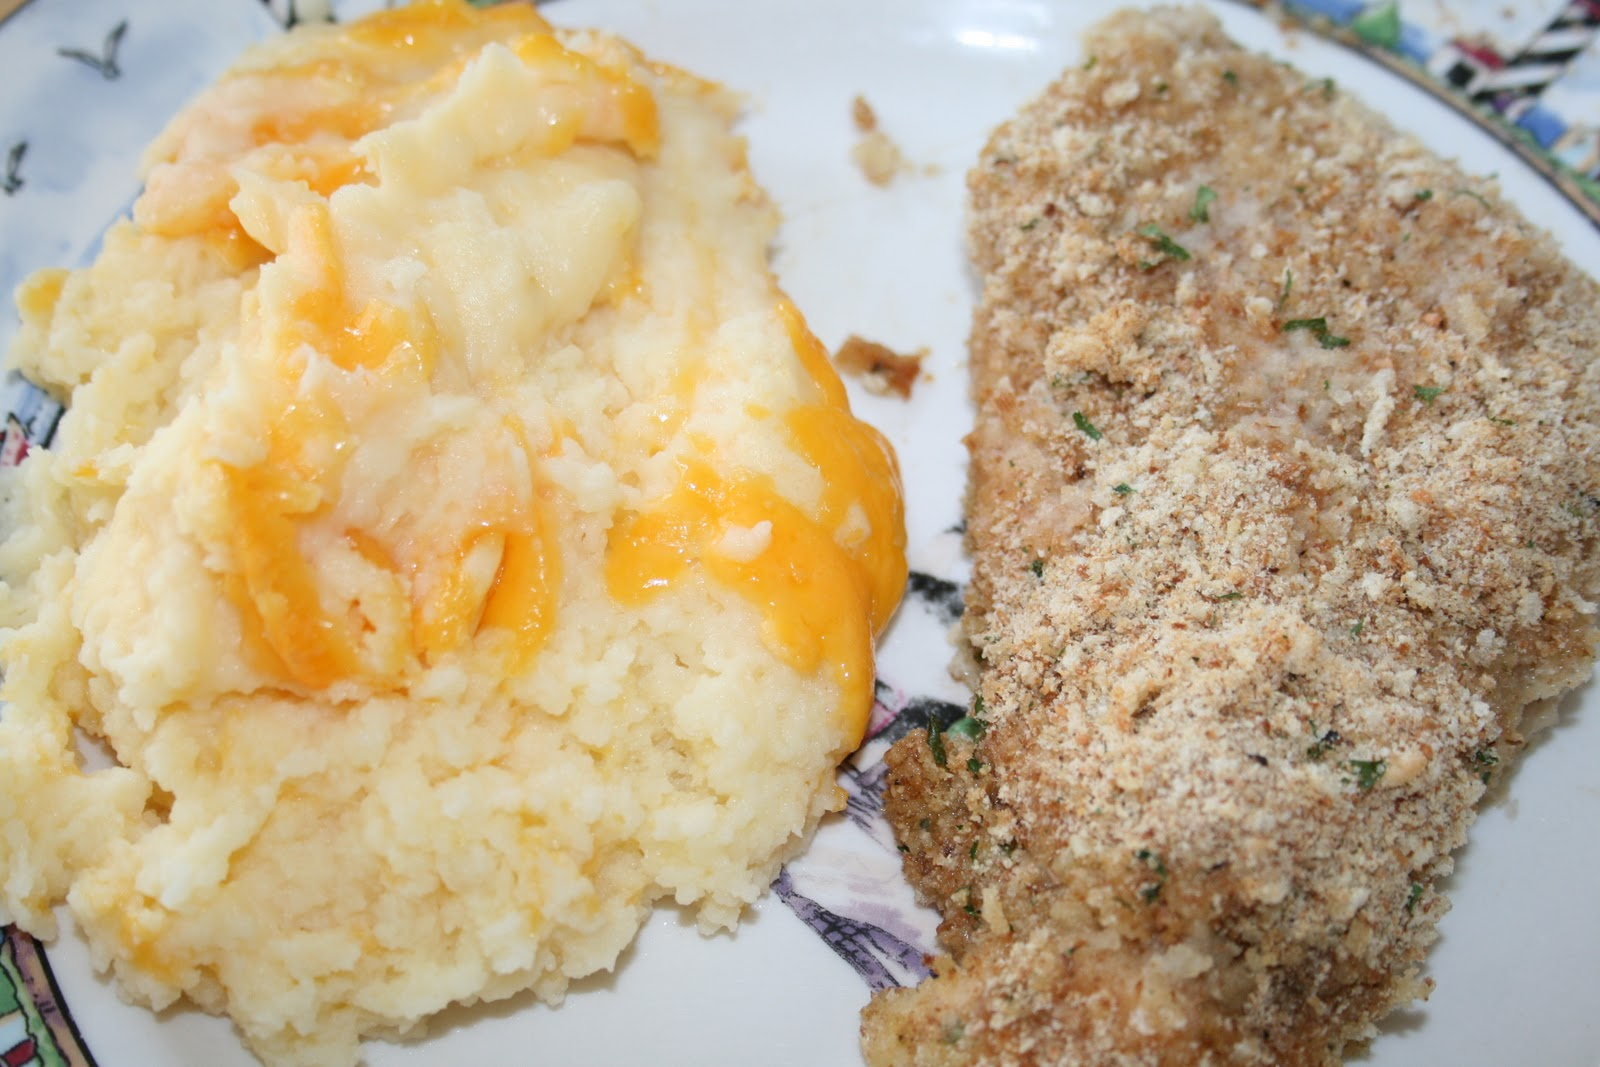 ... Just One Bite!: Parmesan Breaded Chicken and Cheesy Puffed Potatoes